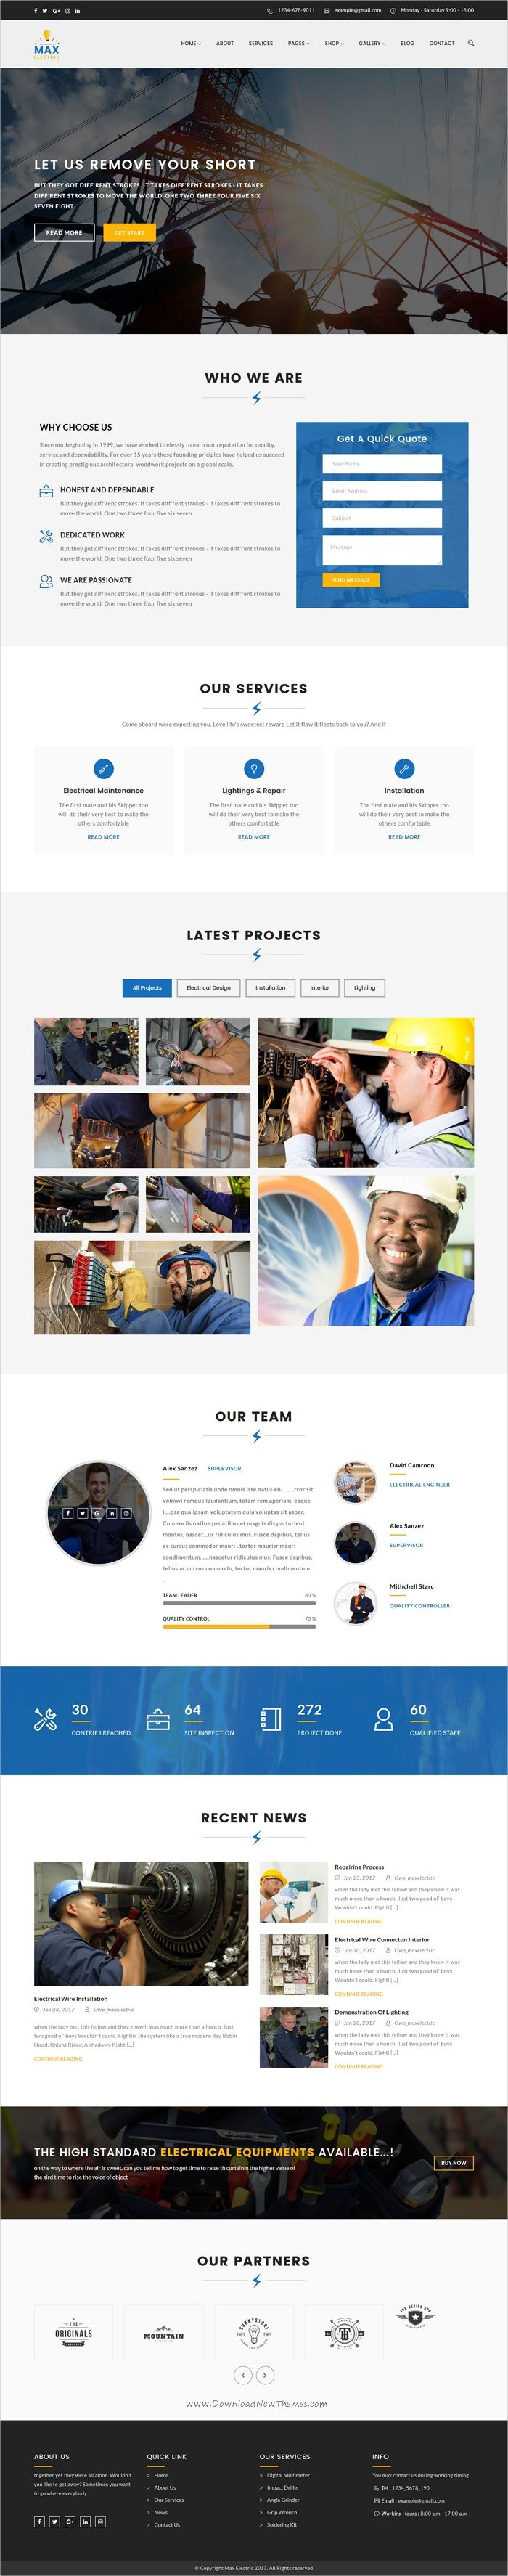 Max electric is a wonderful 2in1 responsive #WordPress theme for stunning #electrician and #engineers websites download now➩ https://themeforest.net/item/max-electric-electrician-wordpress-theme/19384984?ref=Datasata